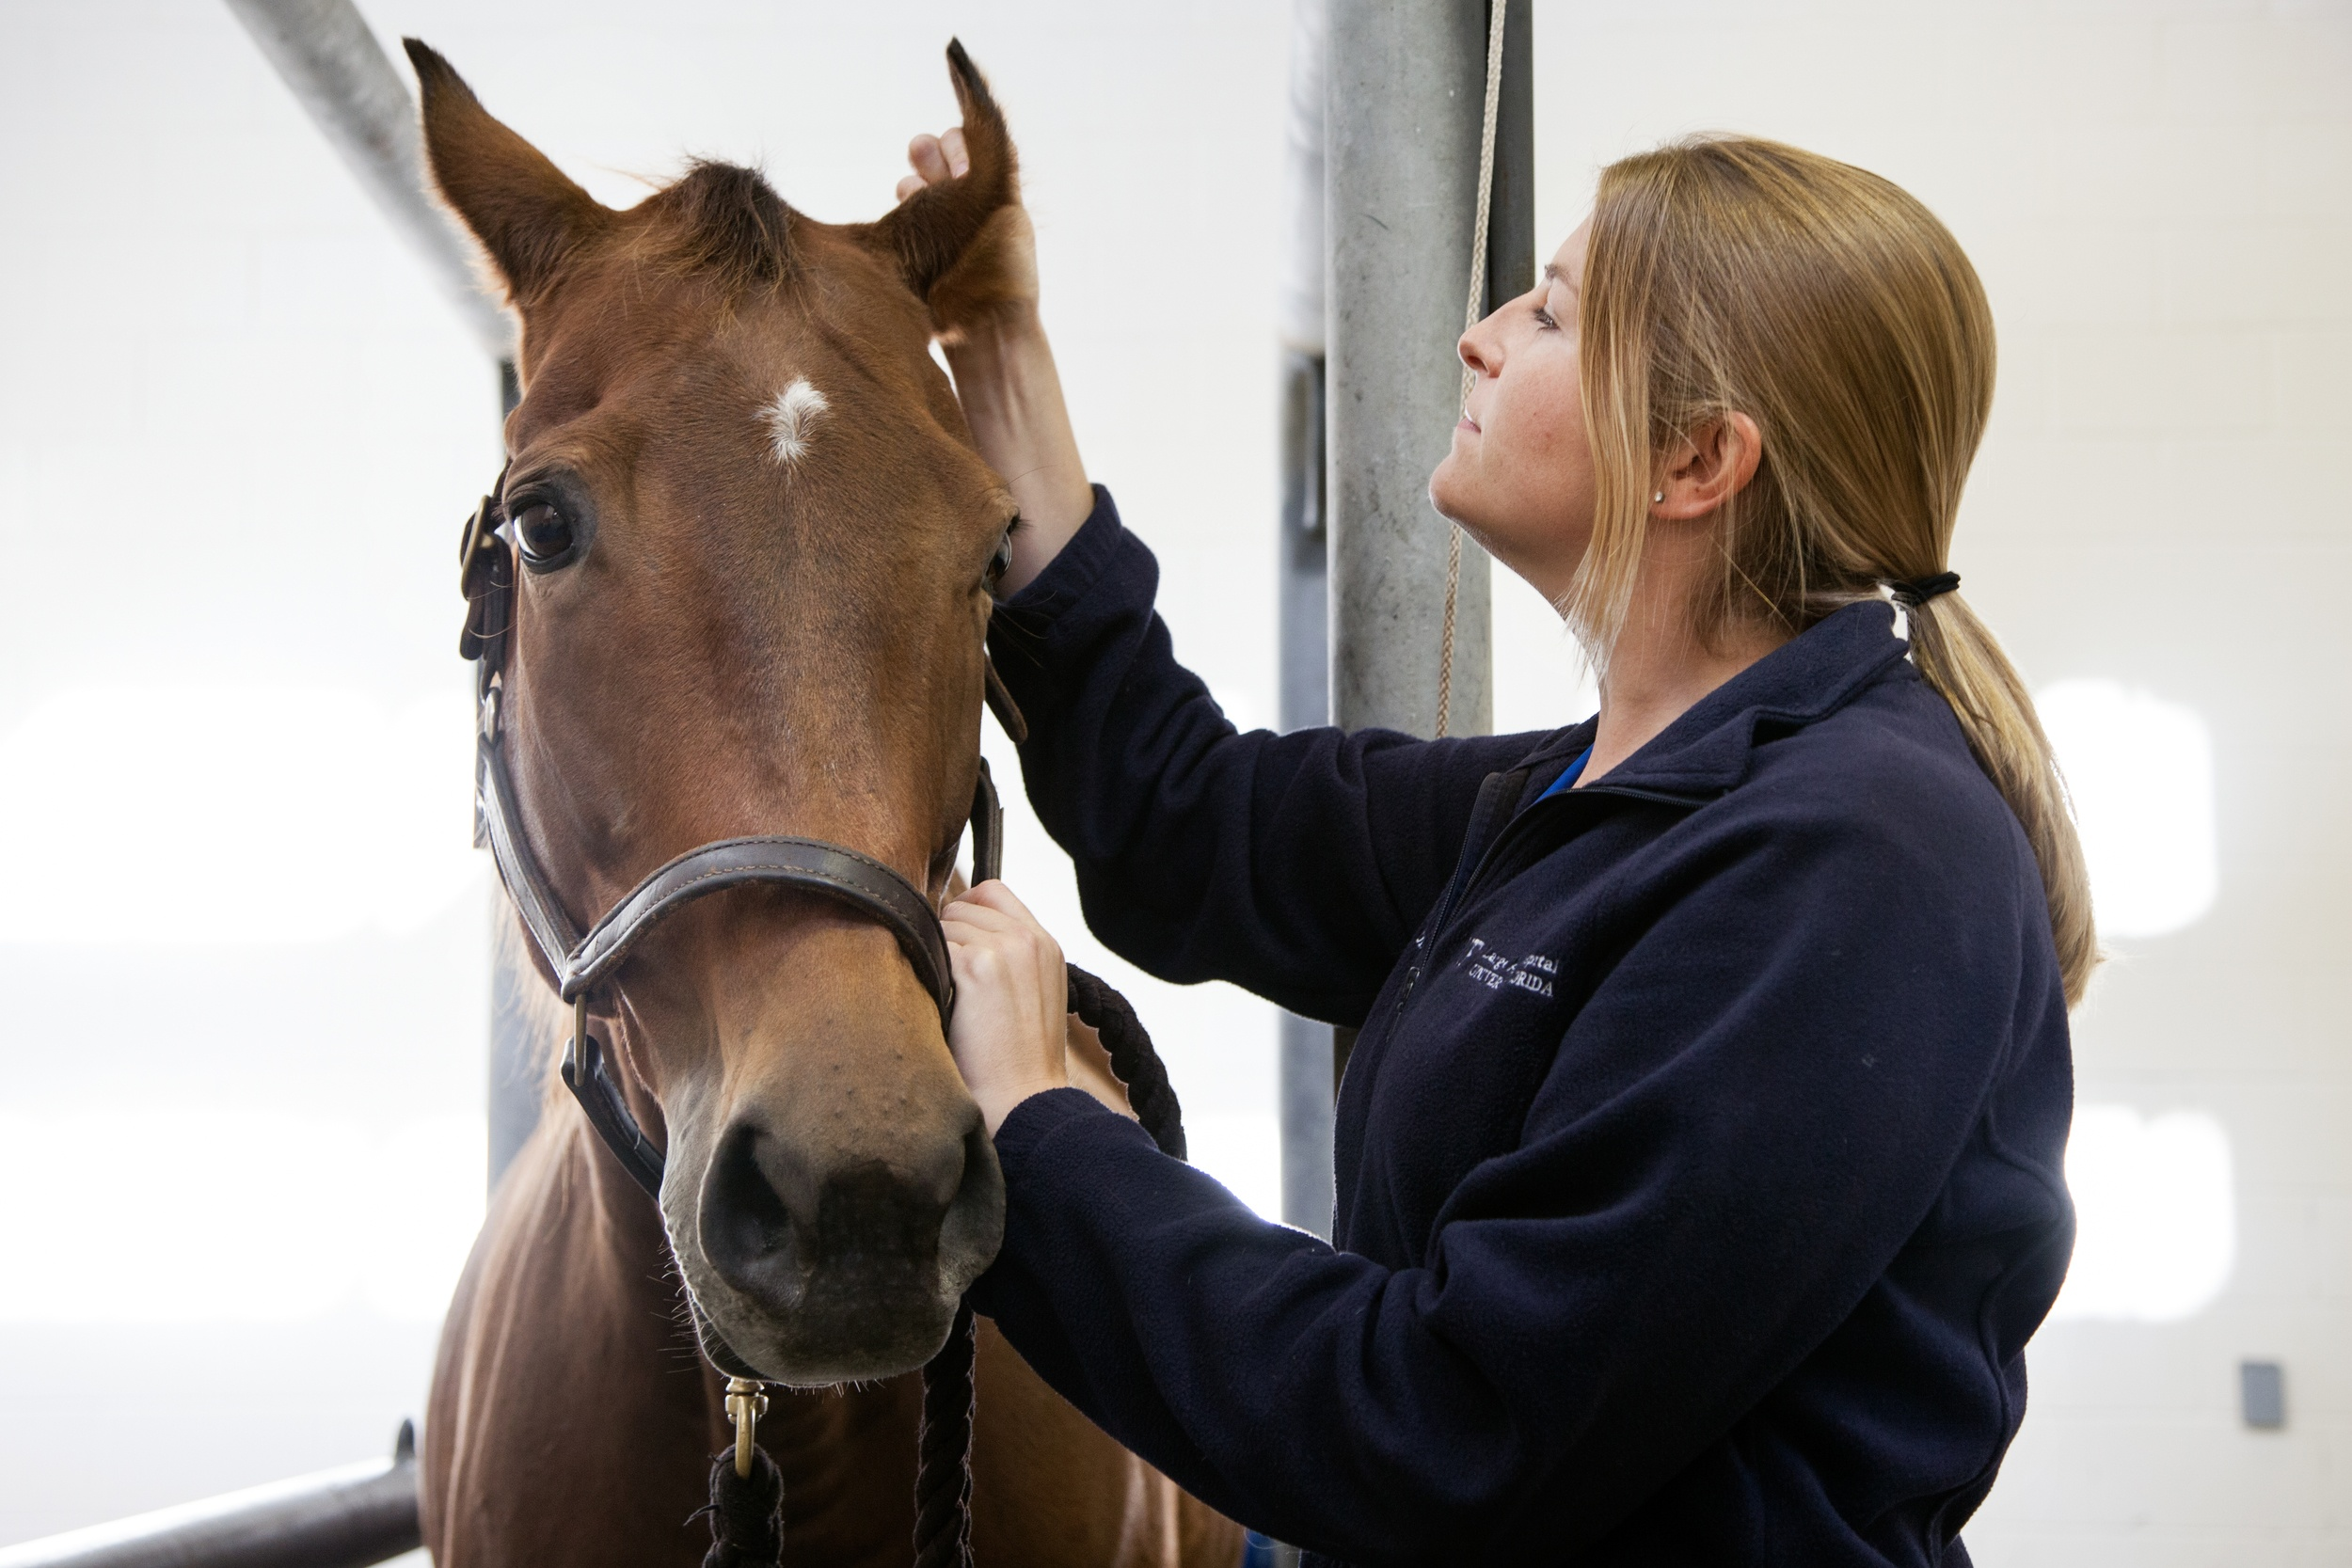 medical imaging cloud PACS for equine veterinarians